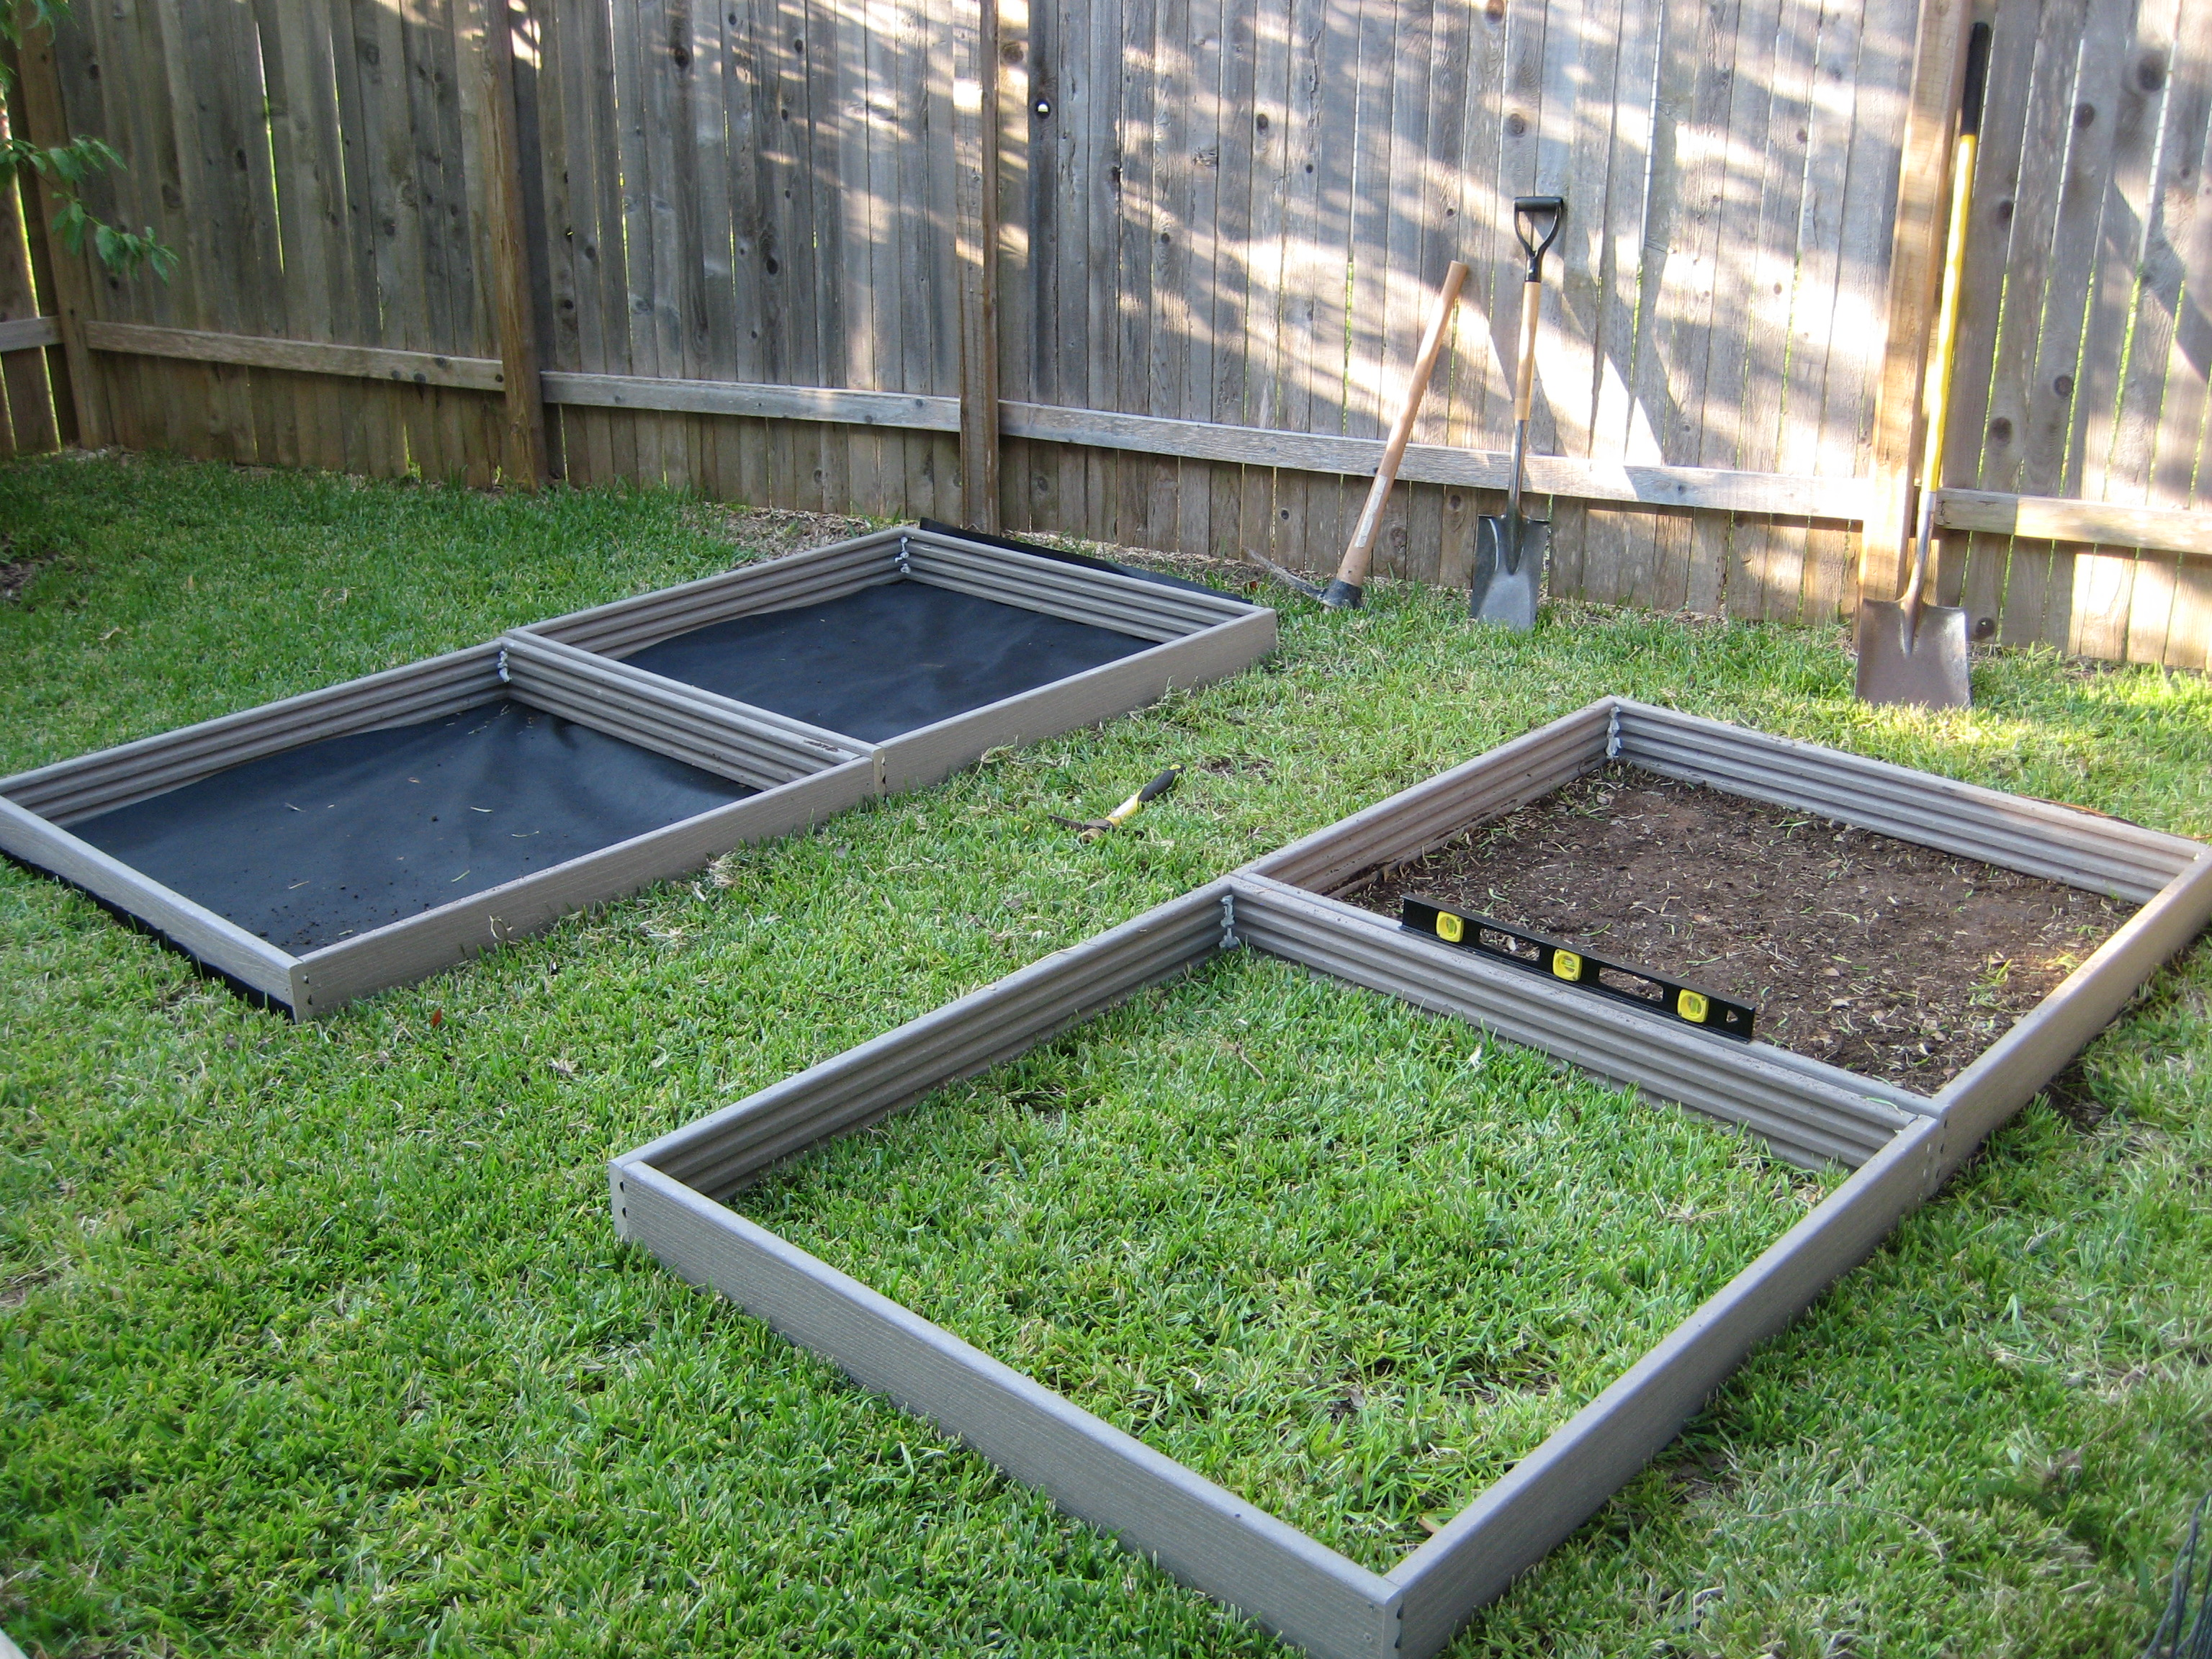 Use Raised Garden Beds to Battle Deer and Dirt | The How Do ... on small front garden design ideas, flower bed box ideas, raised bed with bench, outdoor bench ideas, safari box ideas, thanksgiving box ideas, planter box ideas, baby box ideas, cookies box ideas, herb garden design ideas, date box ideas, recycling box ideas, unique container garden ideas, christmas box ideas, backyard herb garden ideas, travel box ideas, tree box ideas, camping box ideas, dessert box ideas, recipe box ideas,